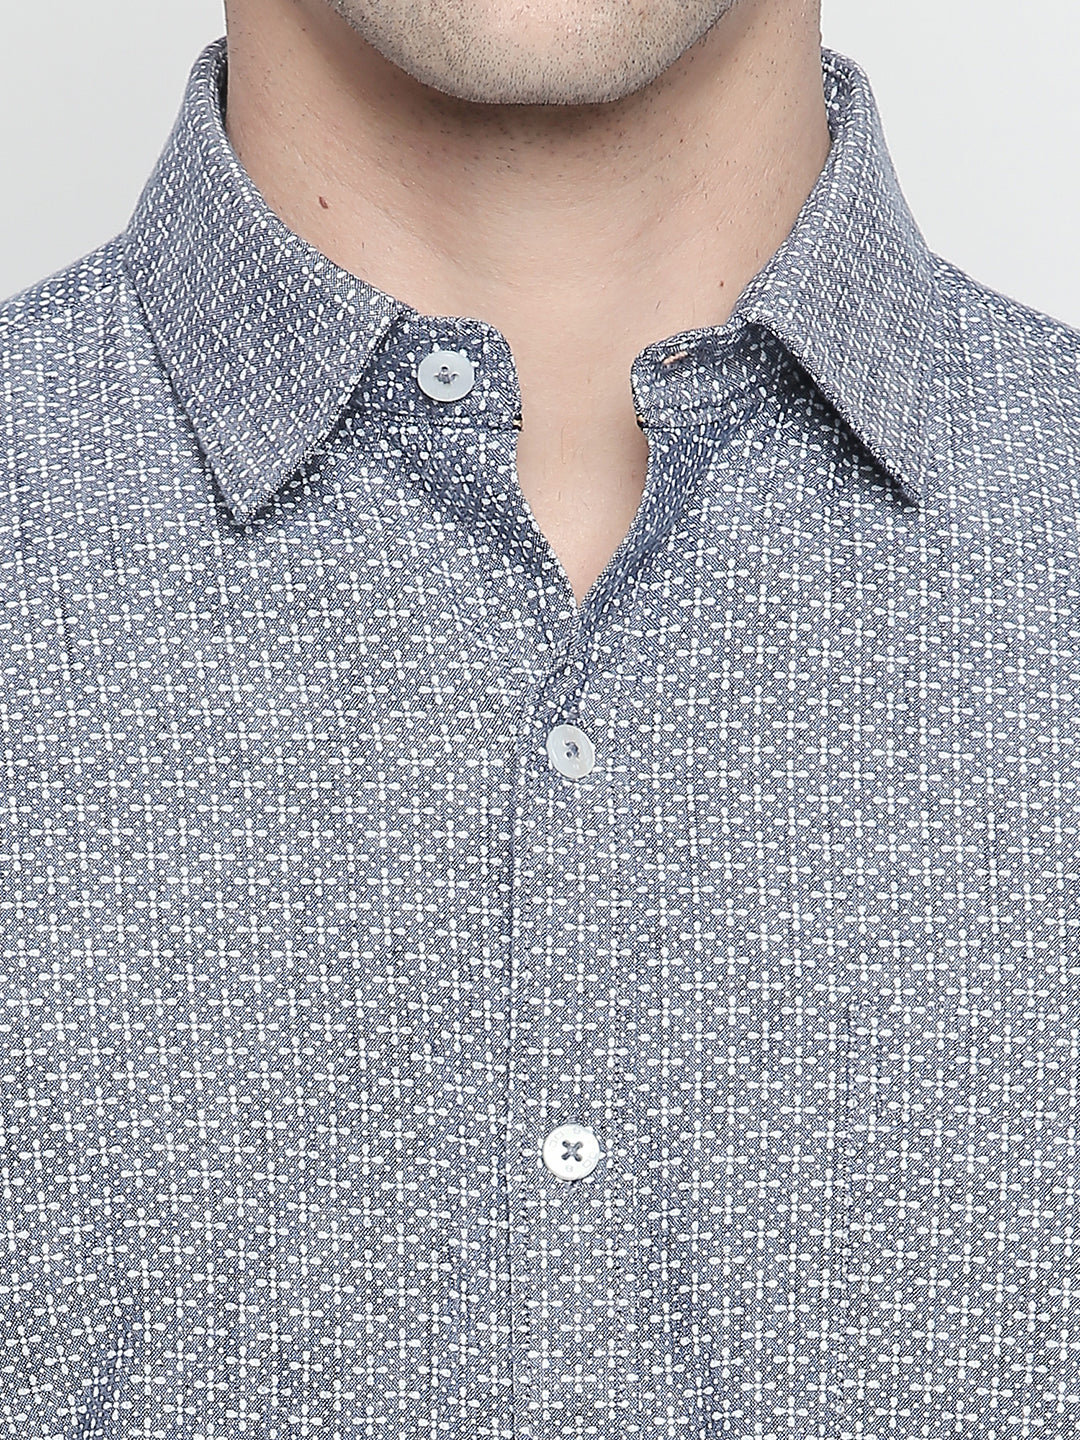 ZIDO Slim Fit Cotton Printed Shirt for Men's PN1440